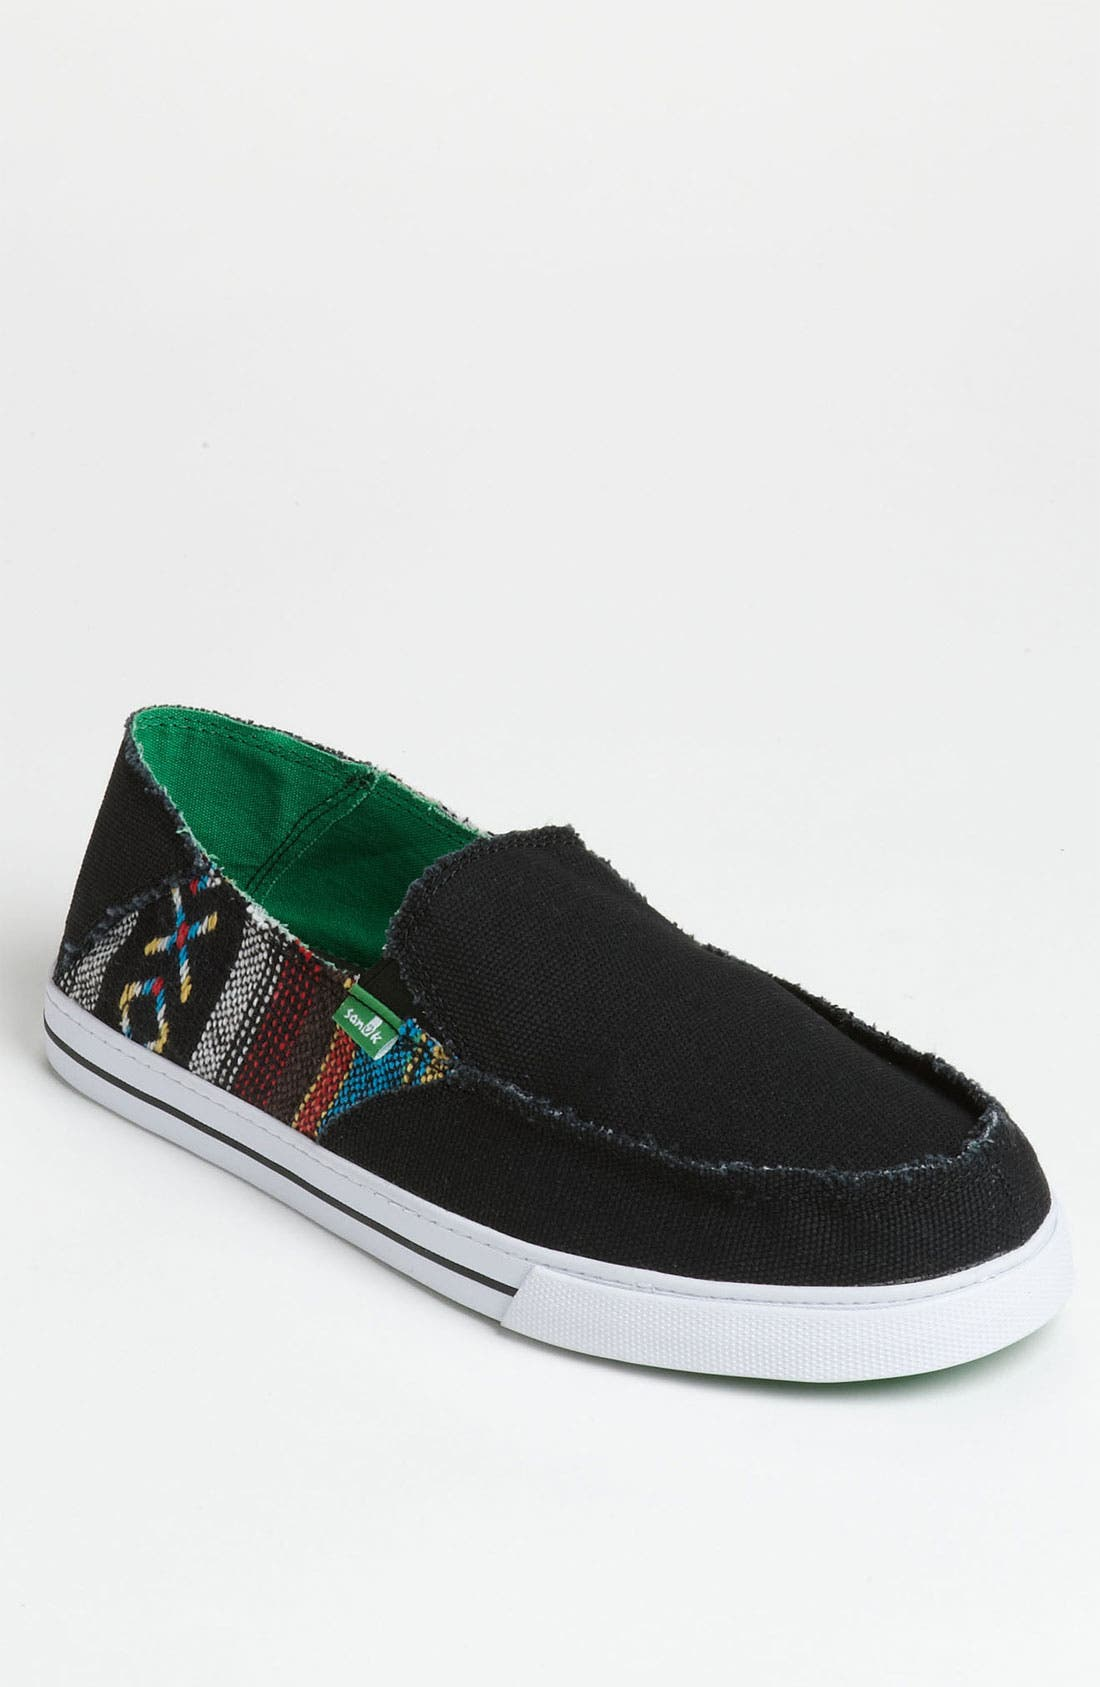 Alternate Image 1 Selected - Sanuk 'Baseline Raw' Slip-On